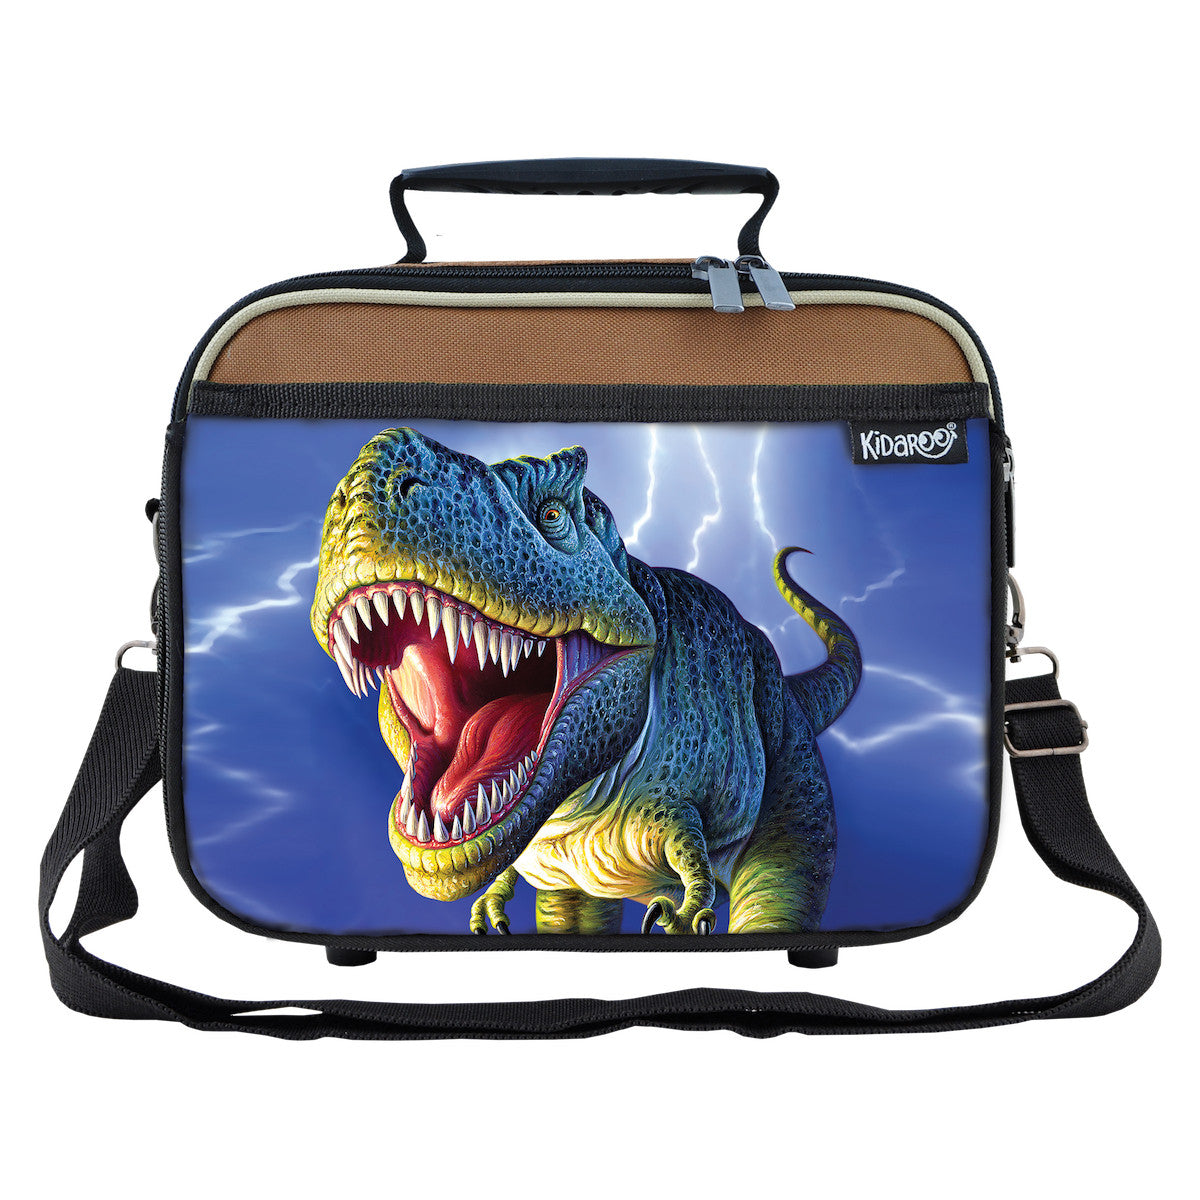 Kidaroo Brown Lightning Rex Dinosaur School Lunchbox Tote for Boys, Girls